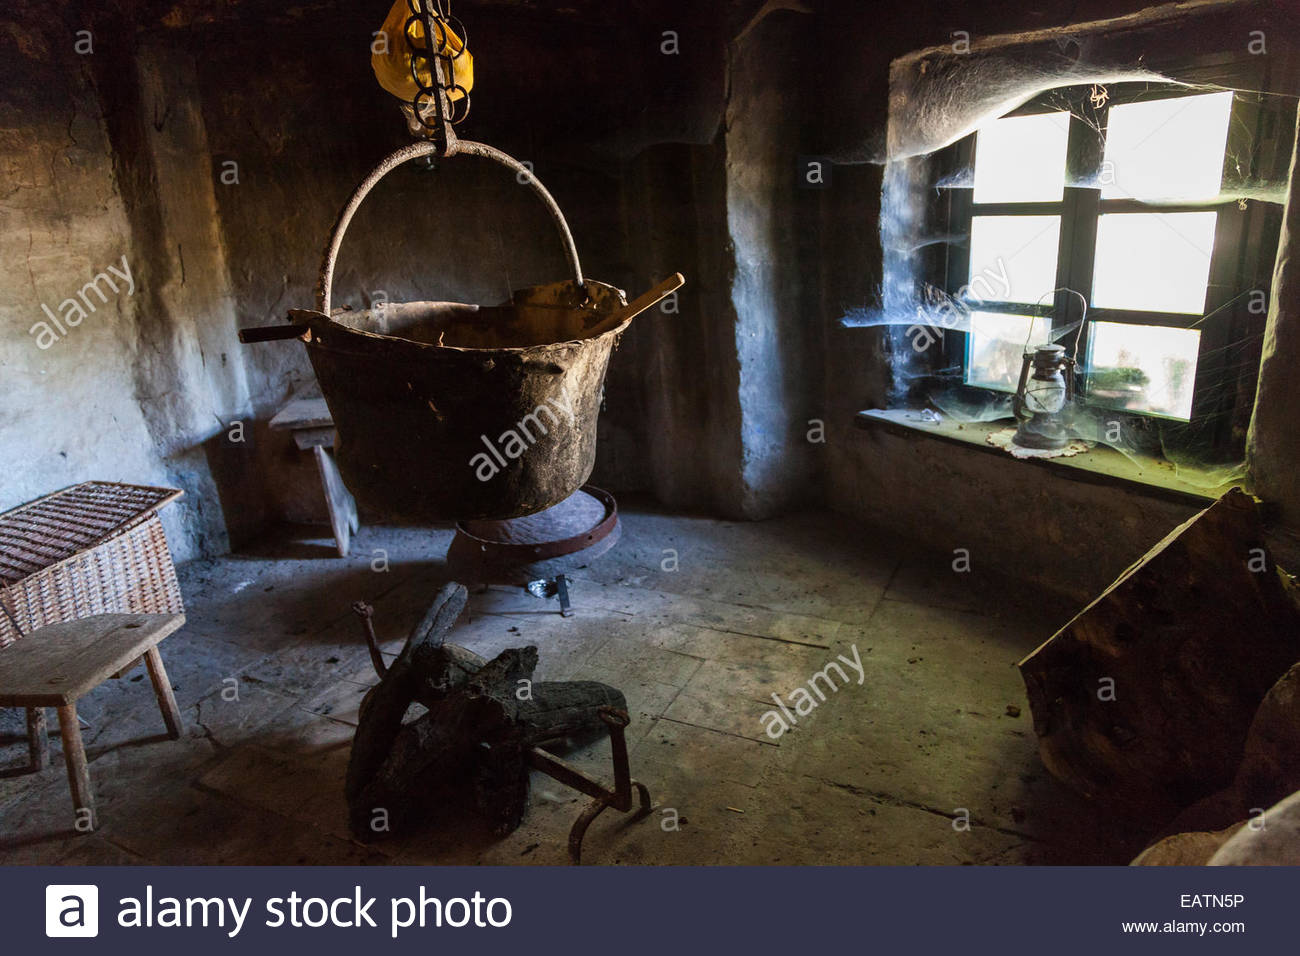 A large kettle hanging over an unlit fire in a traditional kitchen. - Stock Image